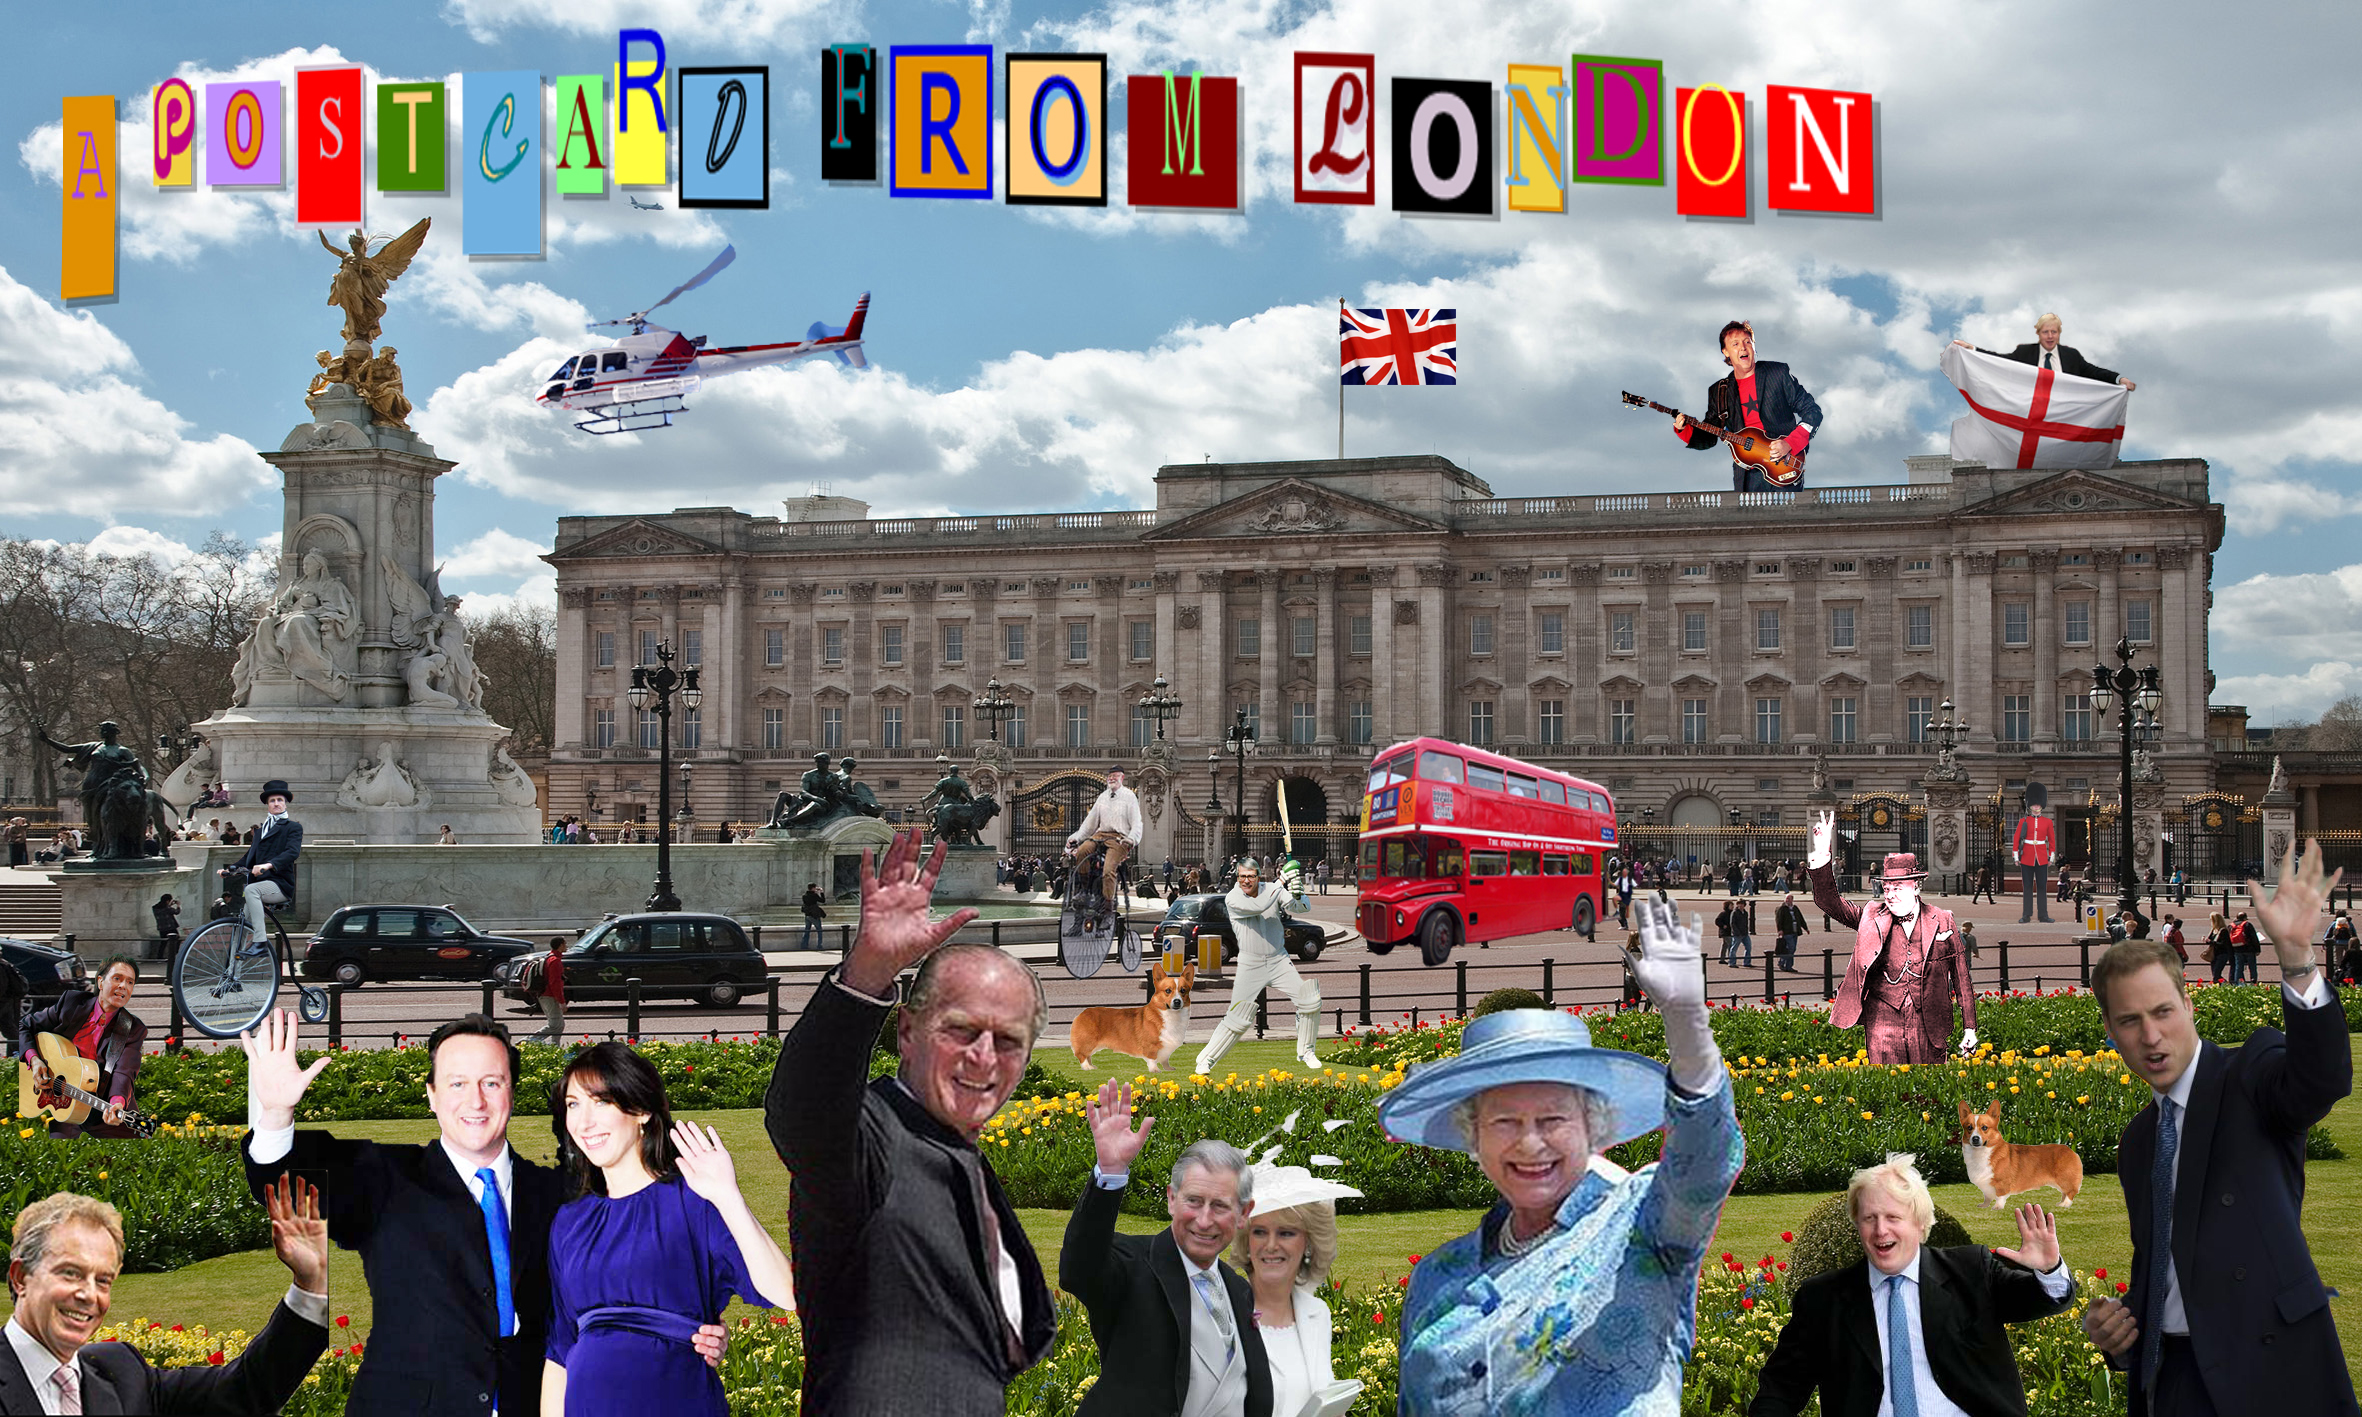 A Postcard from London.jpg